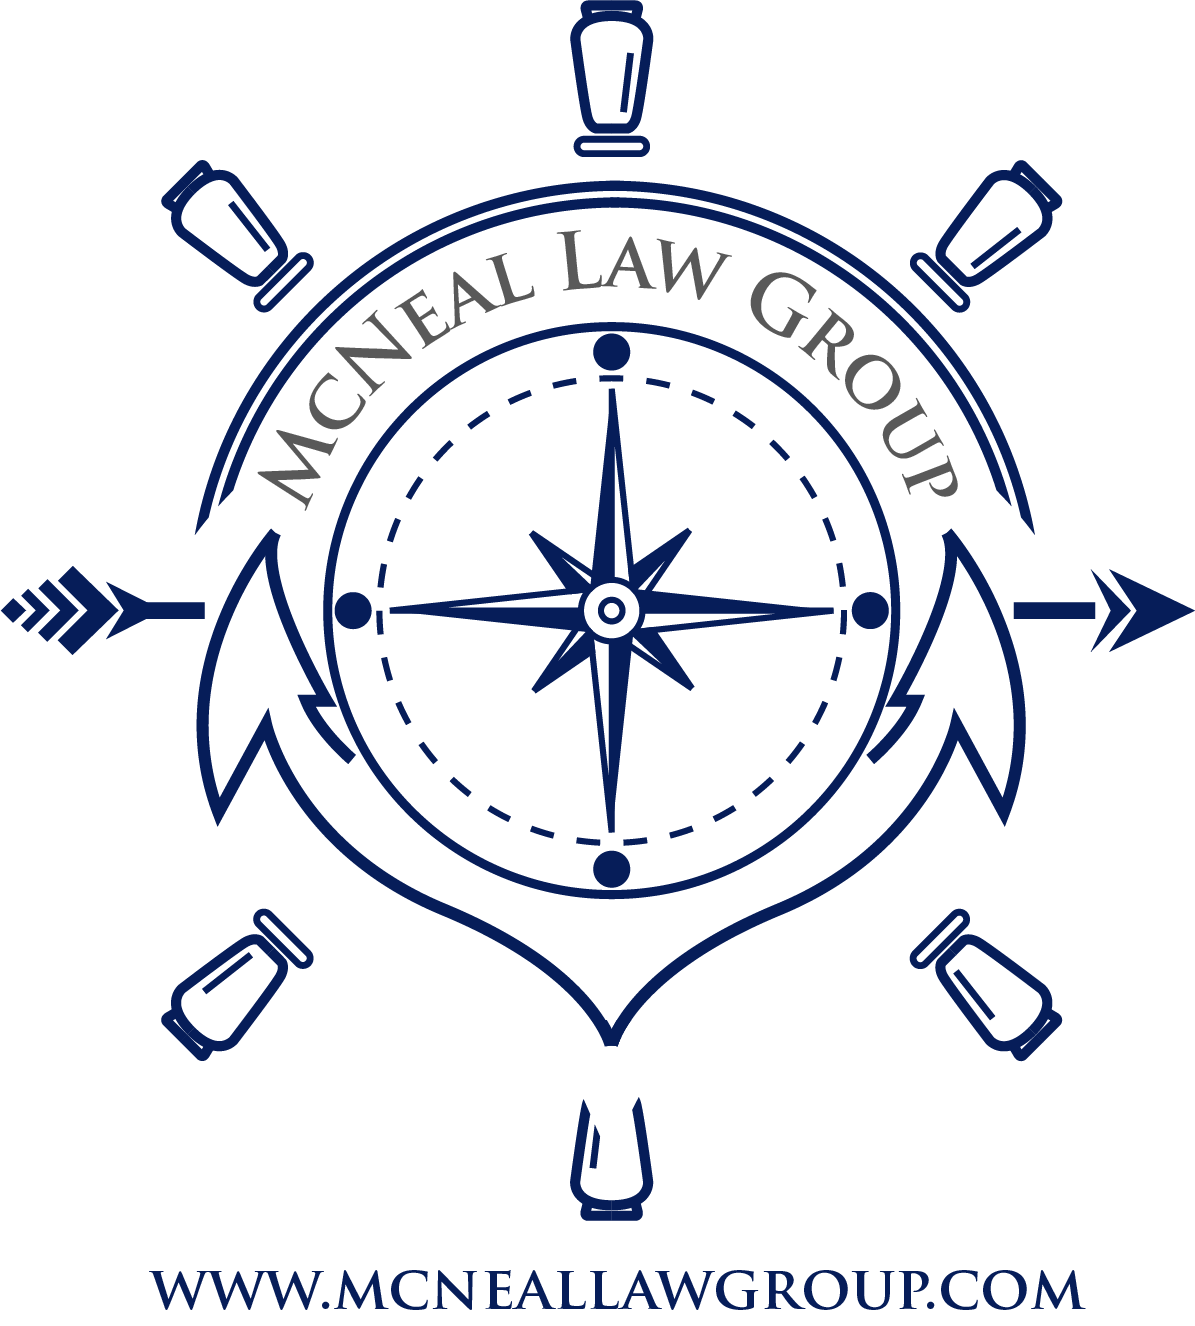 The McNeal Law Firm, an Experienced Personal Injury Attorney in Houston for Accident Claims